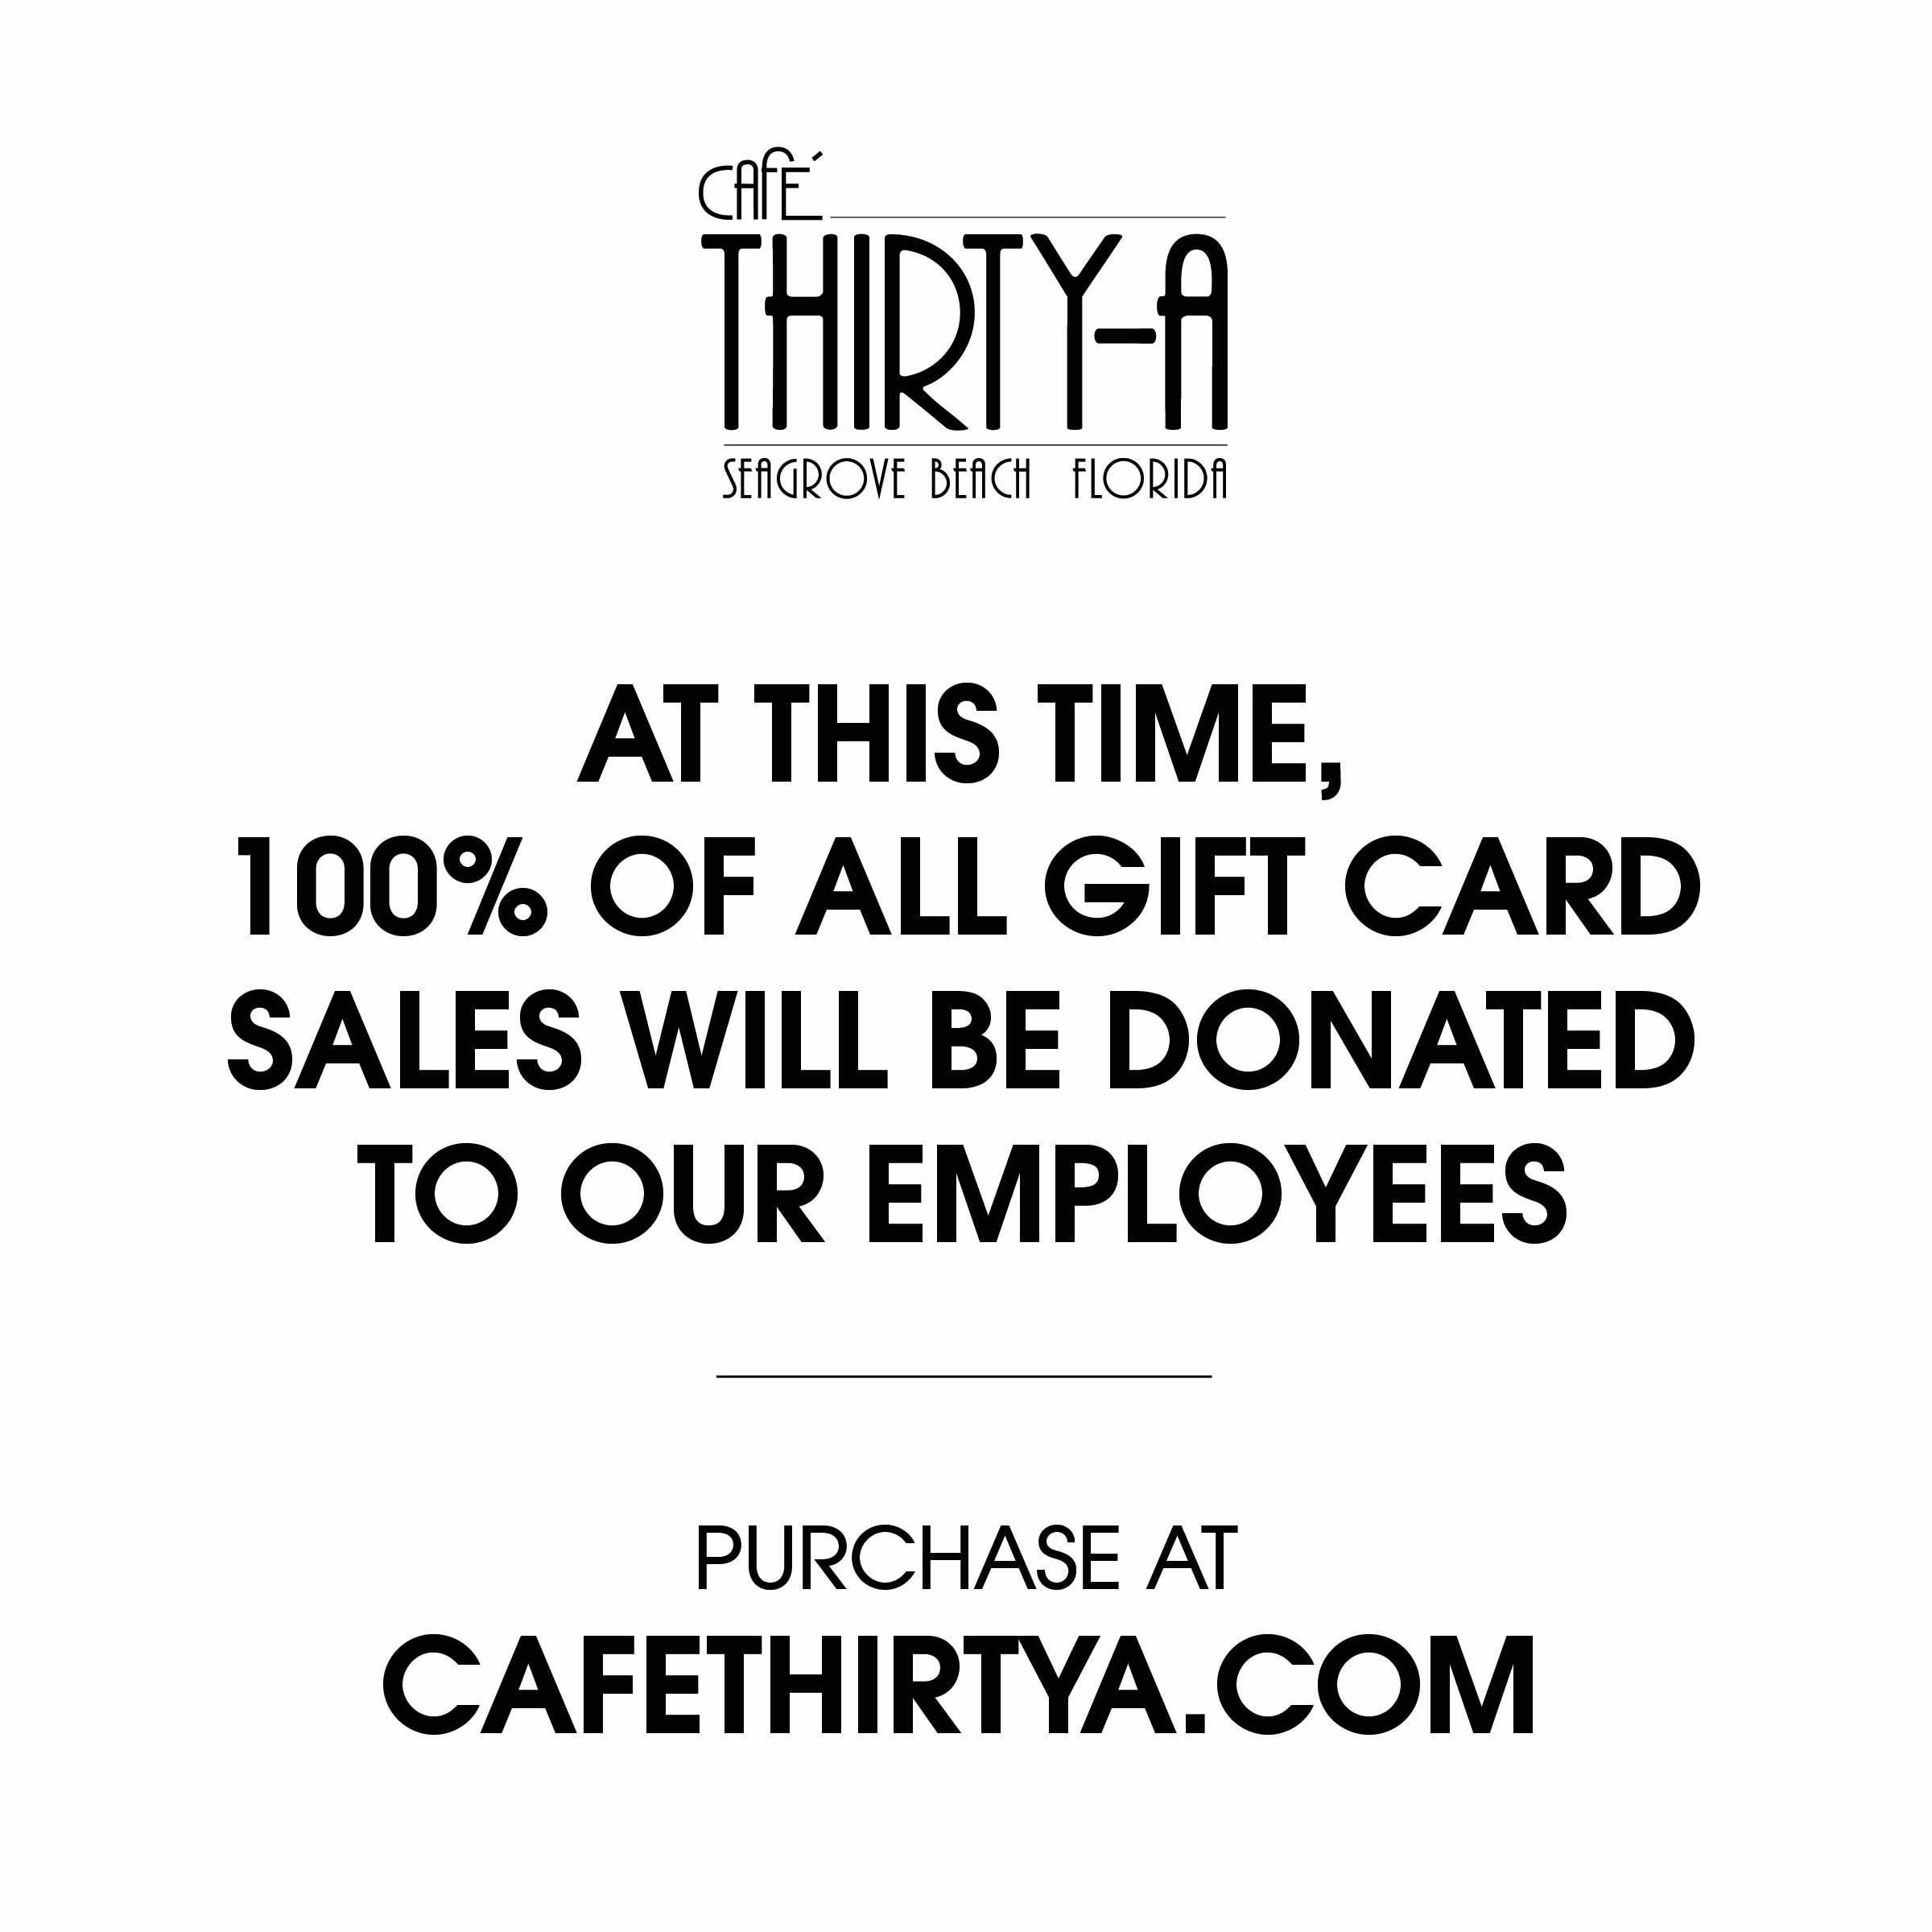 Cafe Thirty-A Gift Cards Drive to Help Employees Due to COVID-19